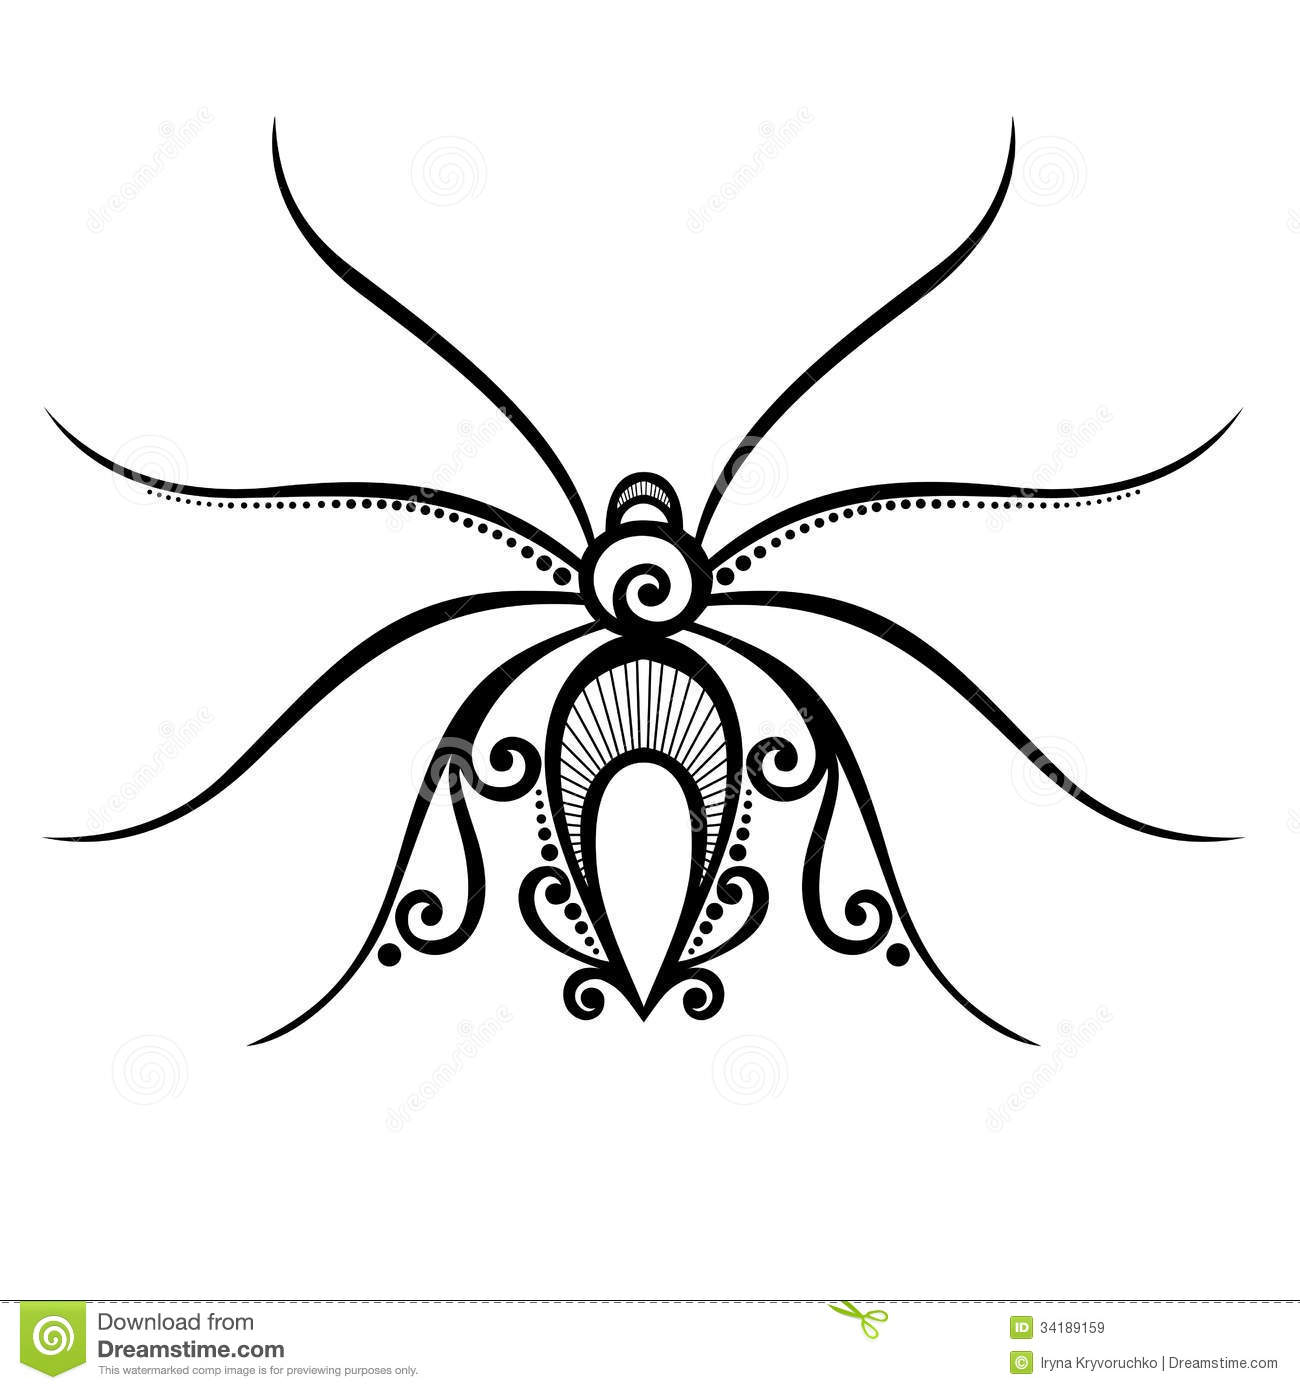 Insect Spyder Royalty Free Stock Images